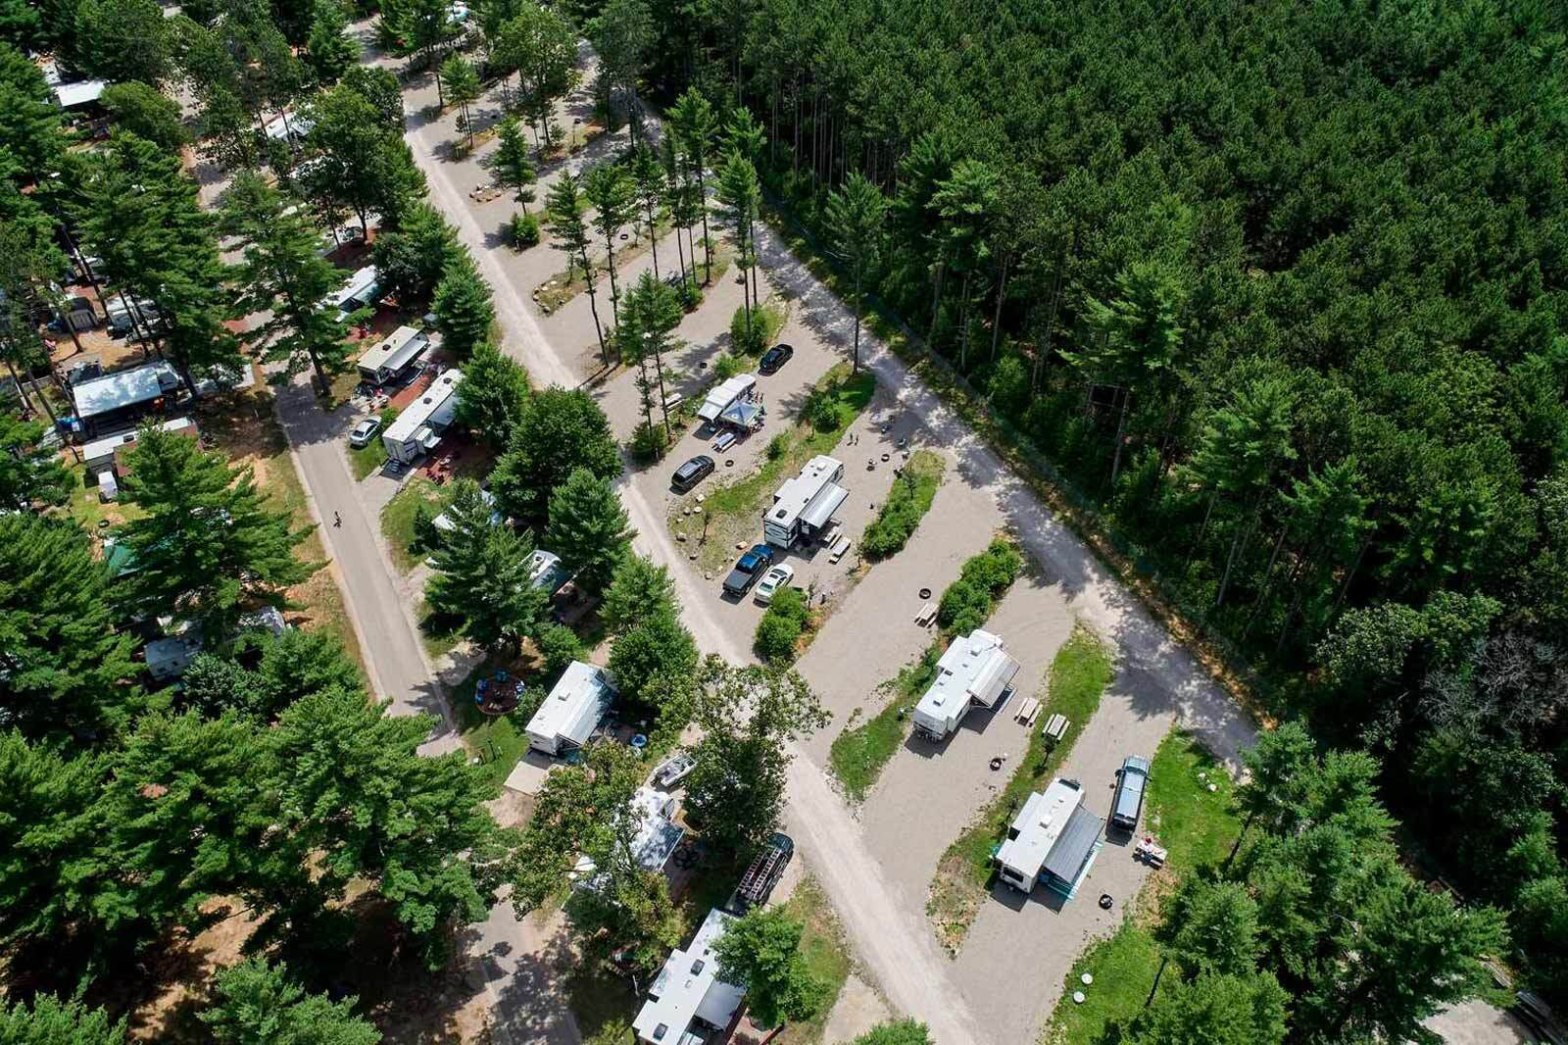 Aerial view of campground with parked trailers